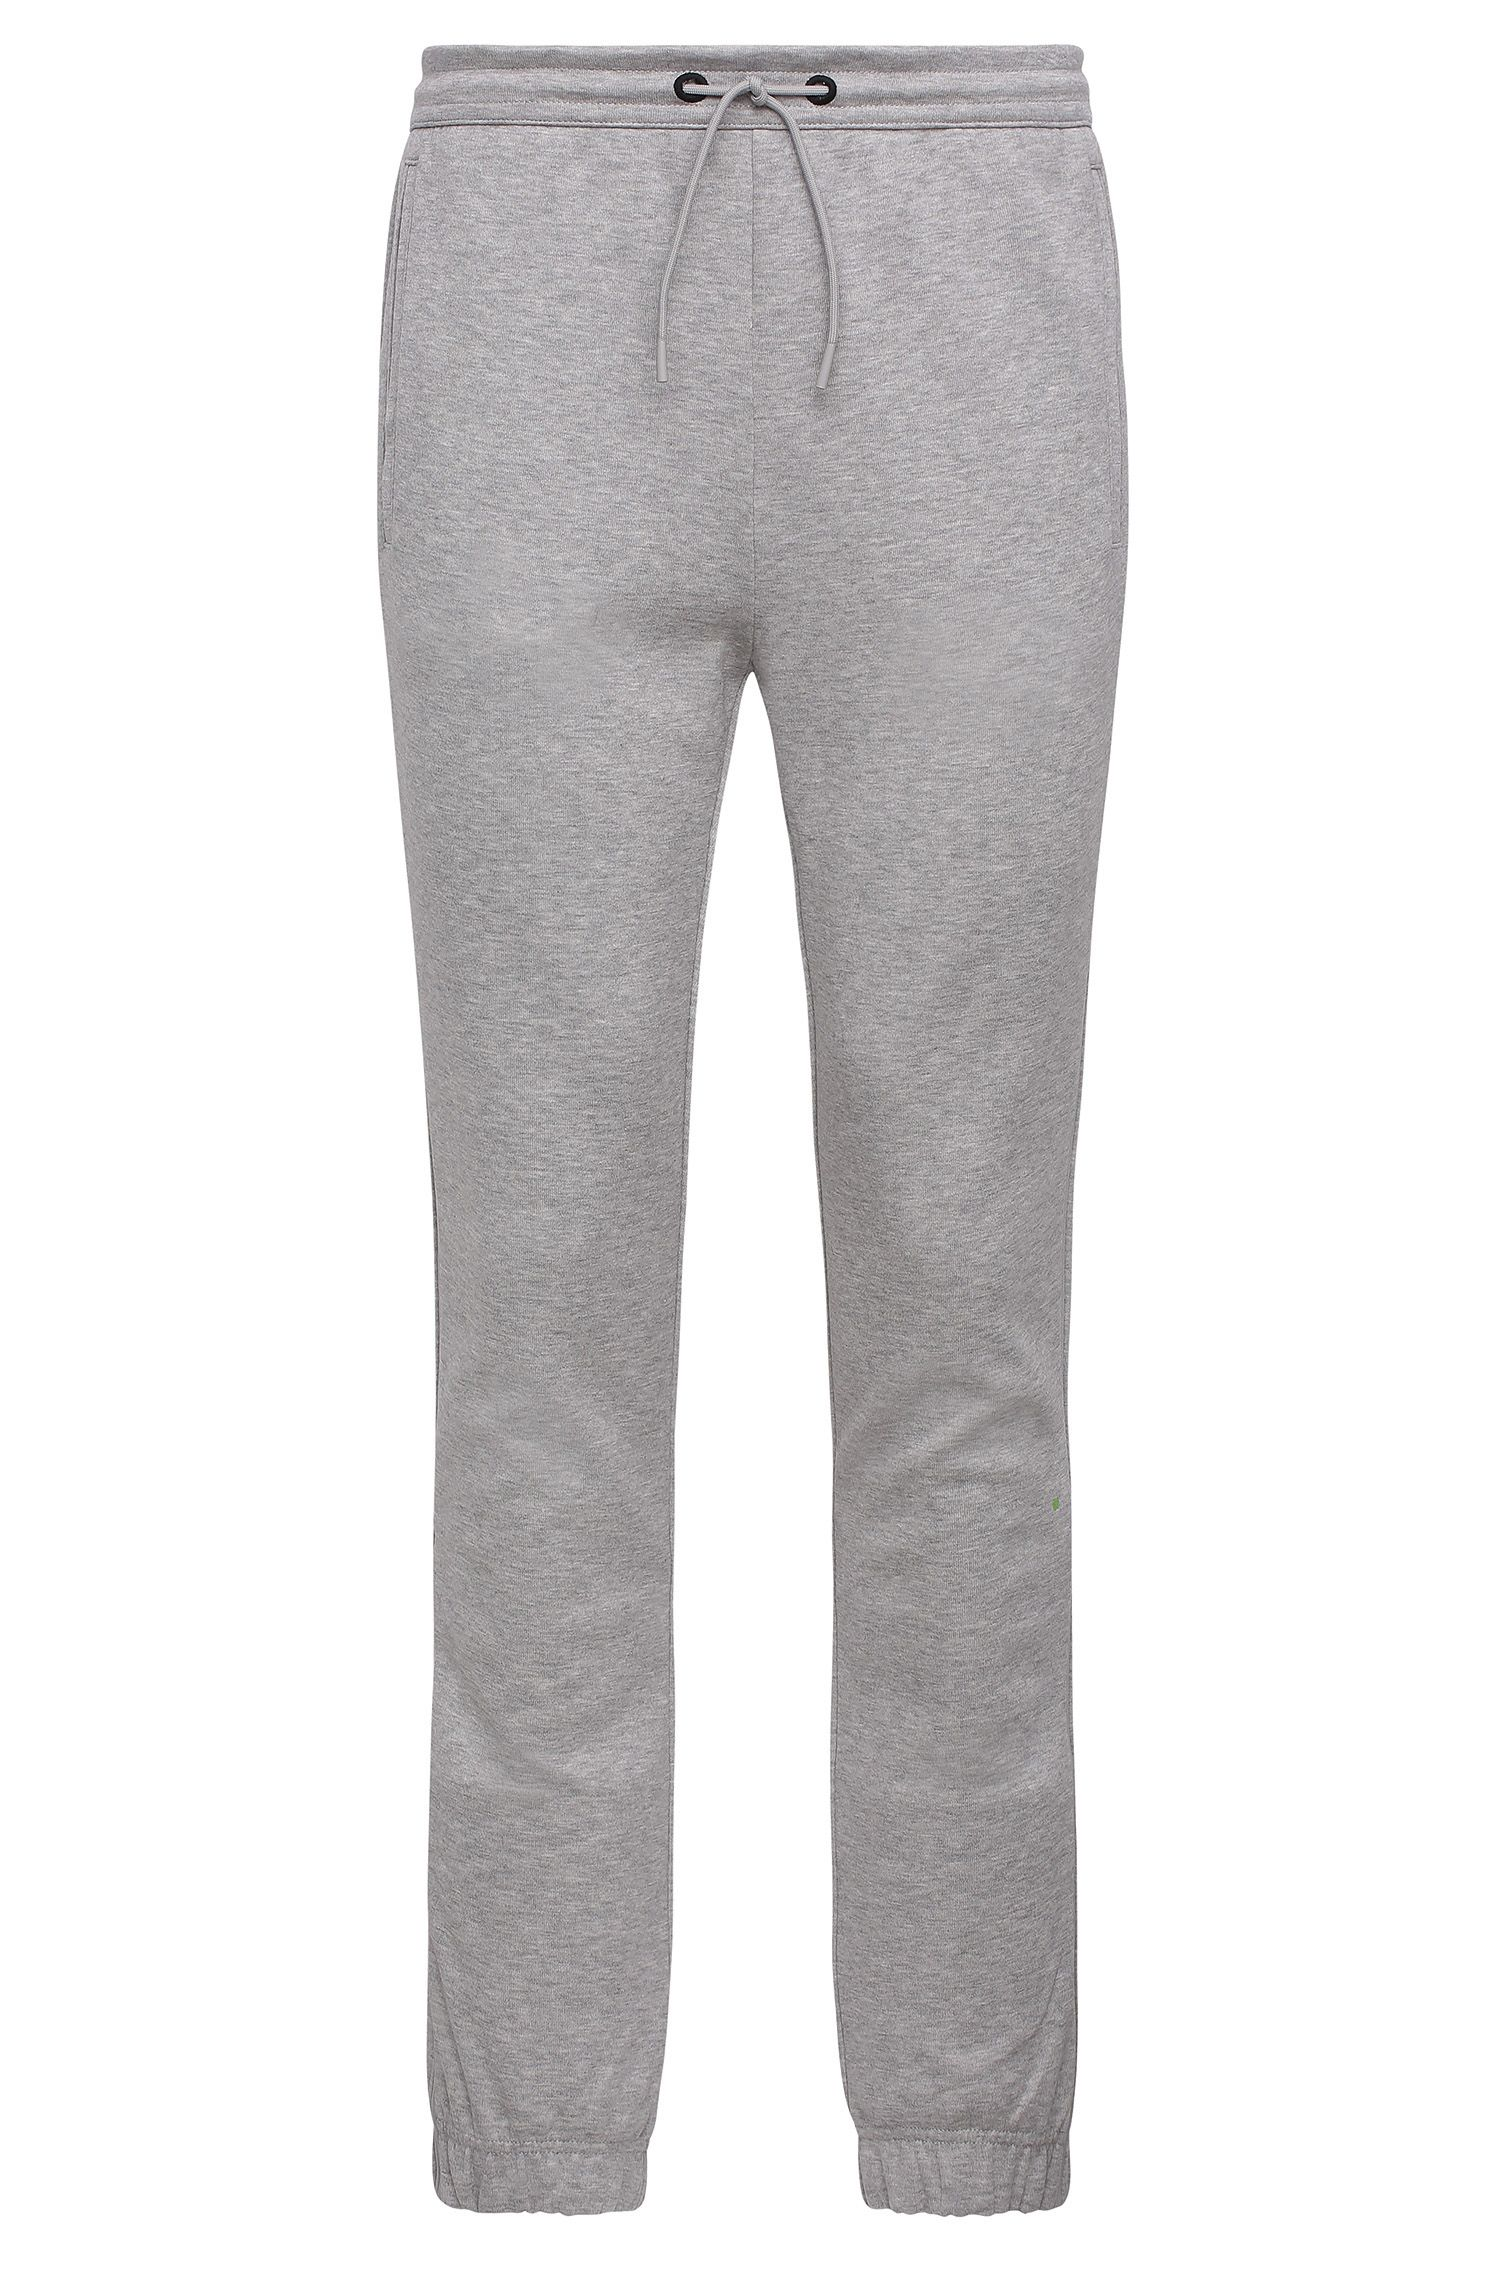 'Hadiko' | Cotton Blend Melange Sweatpants